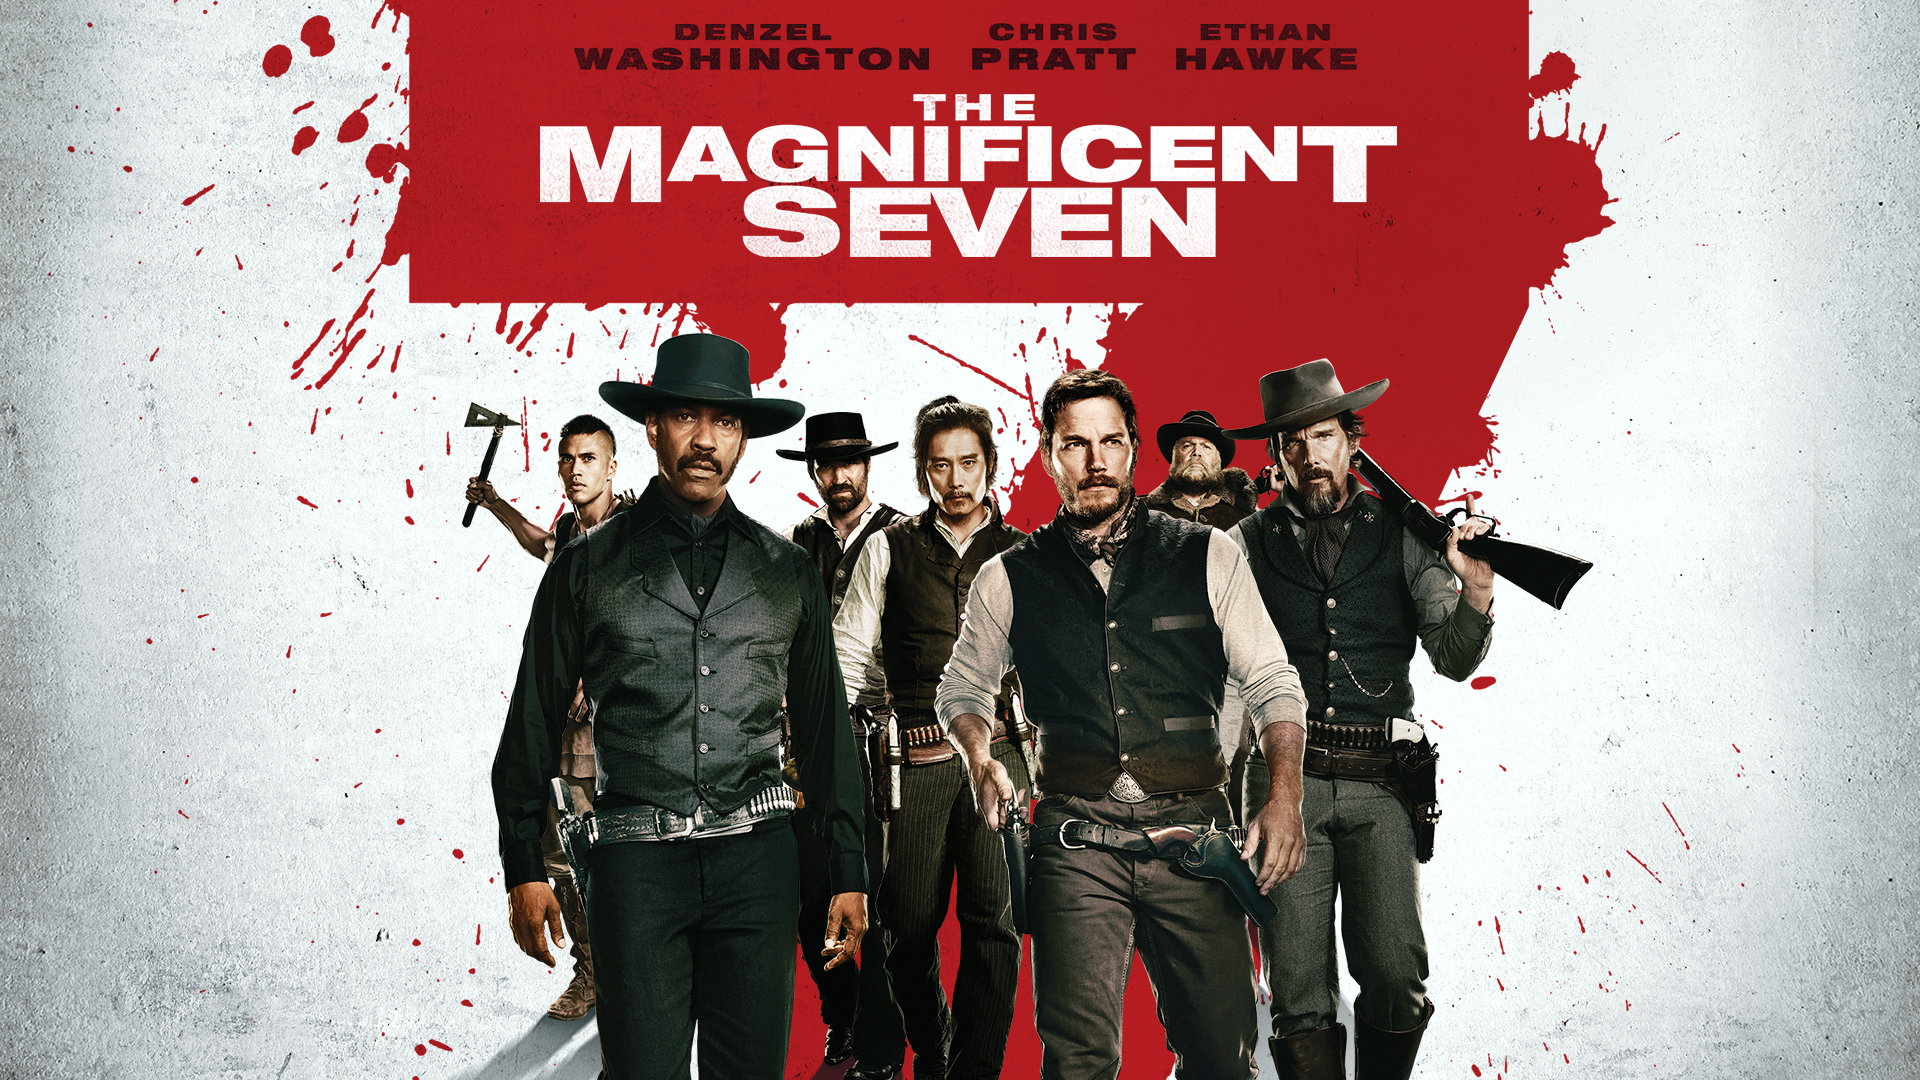 the magnificent seven movie online with english subtitles